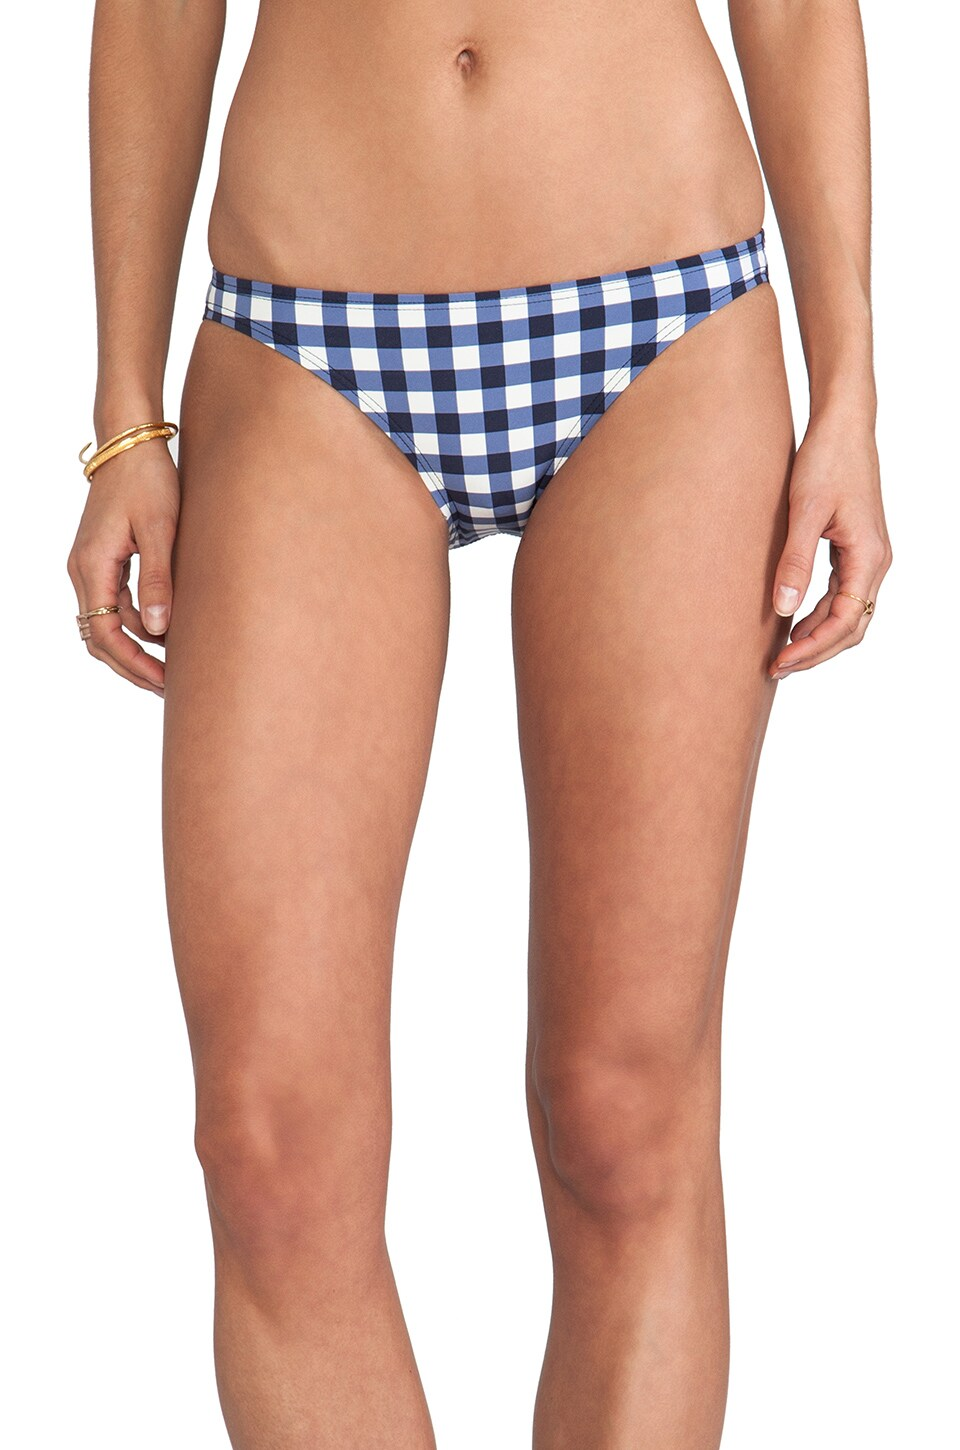 Juicy Couture Gingham Style Classic Bottom in Regal